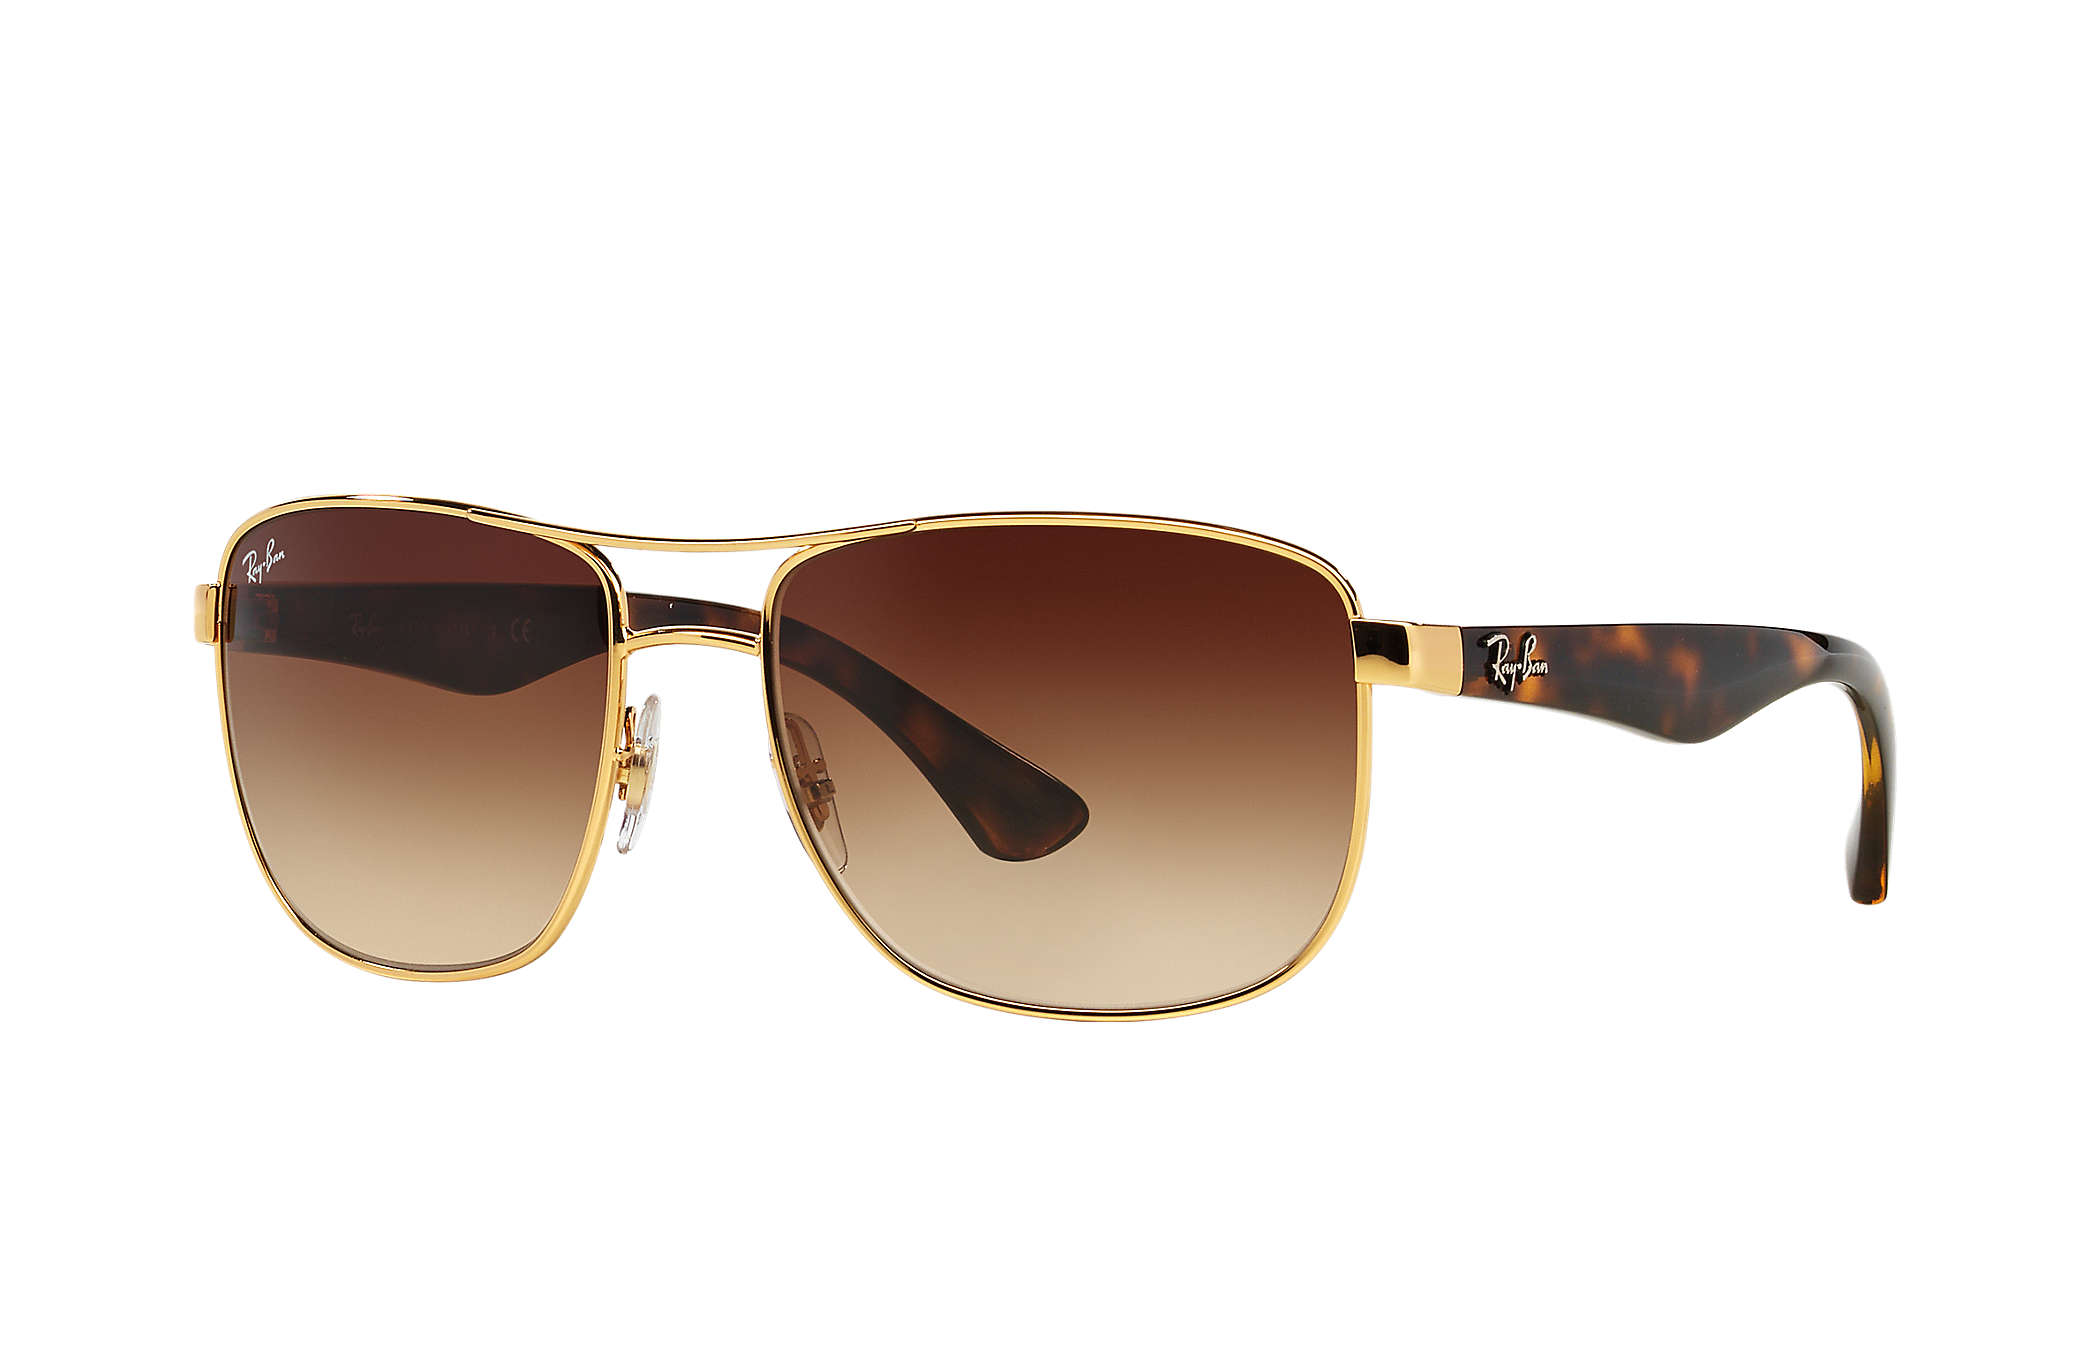 0052ee512f9 Details about New Ray Ban RB3533-001 13-5717 Tortoise   Brown Gradient 57mm  Sunglasses